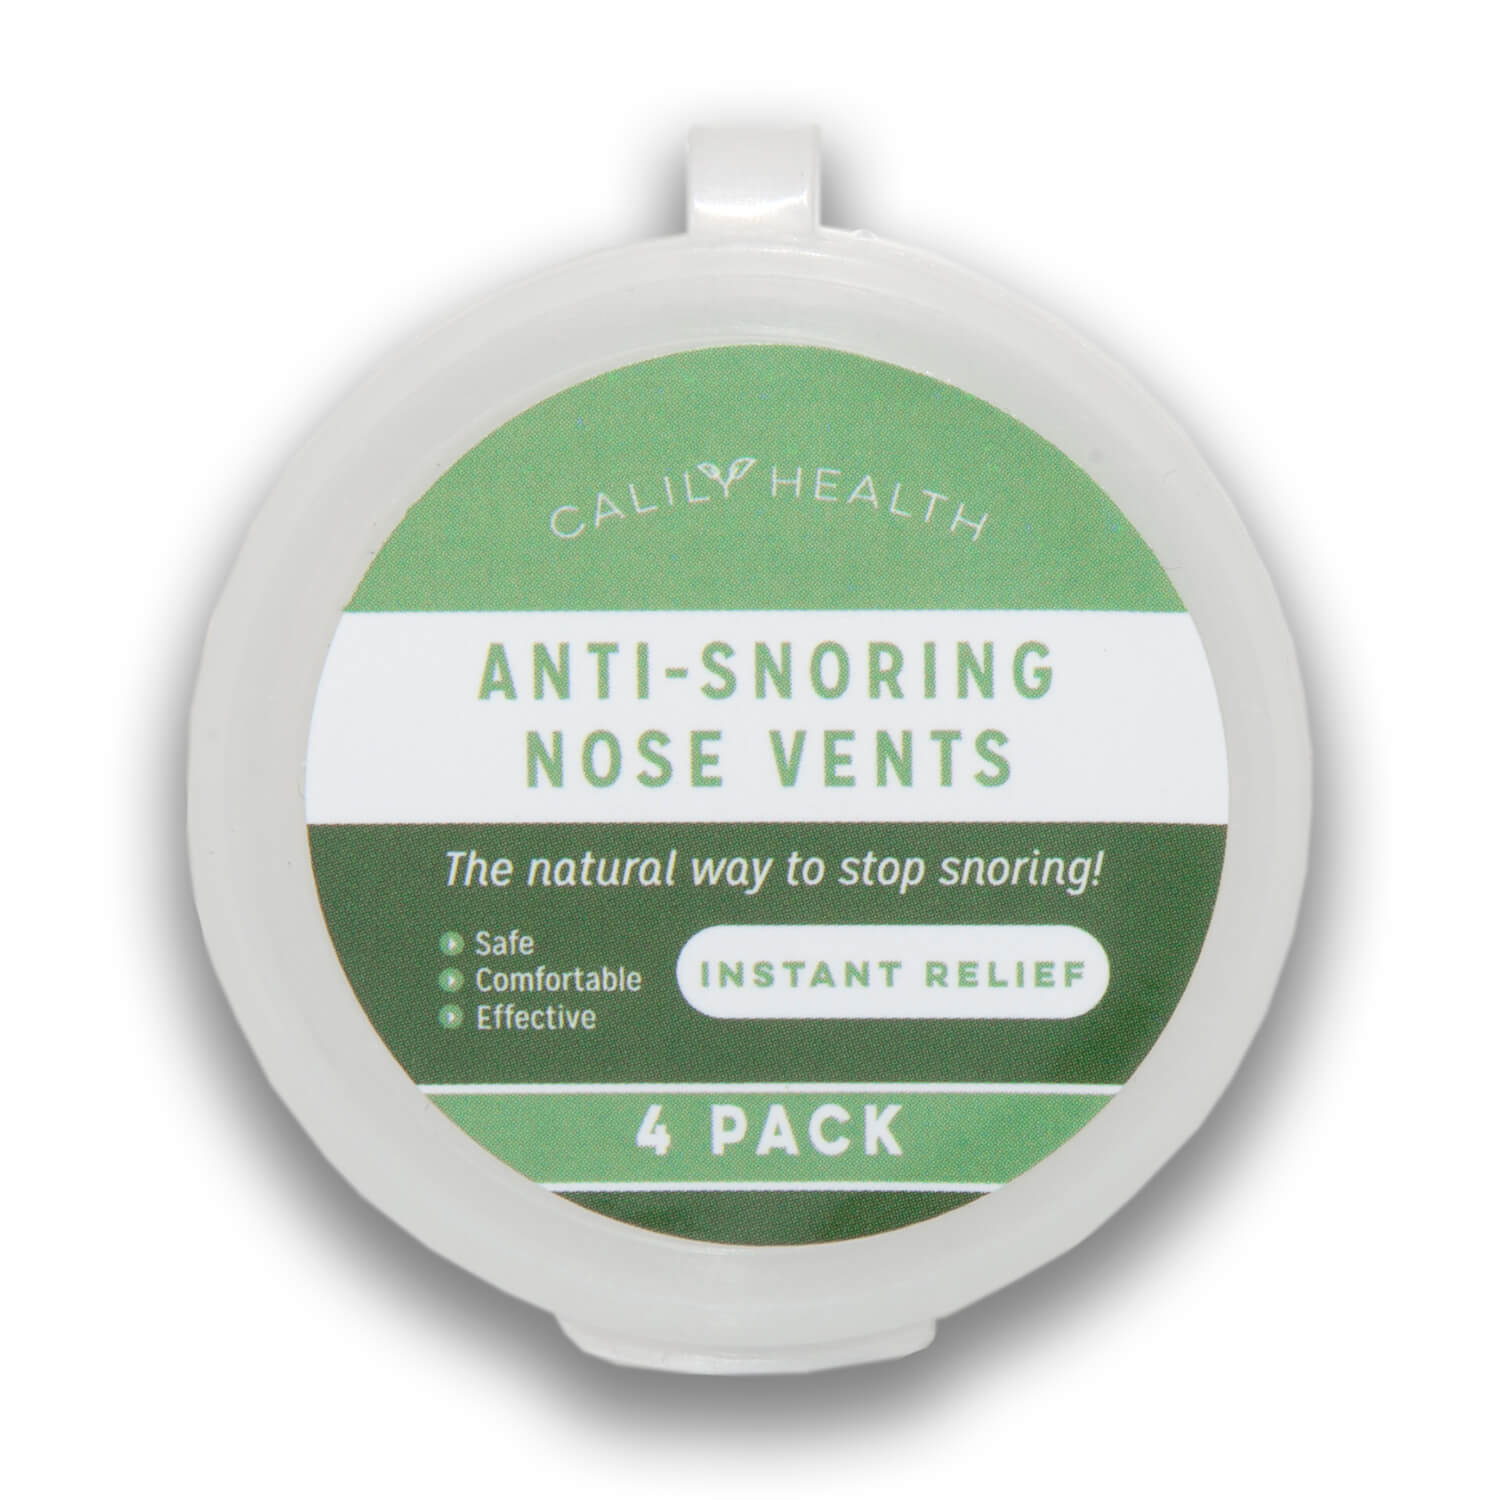 Review of Calily Health Anti-Snoring Nose Vents